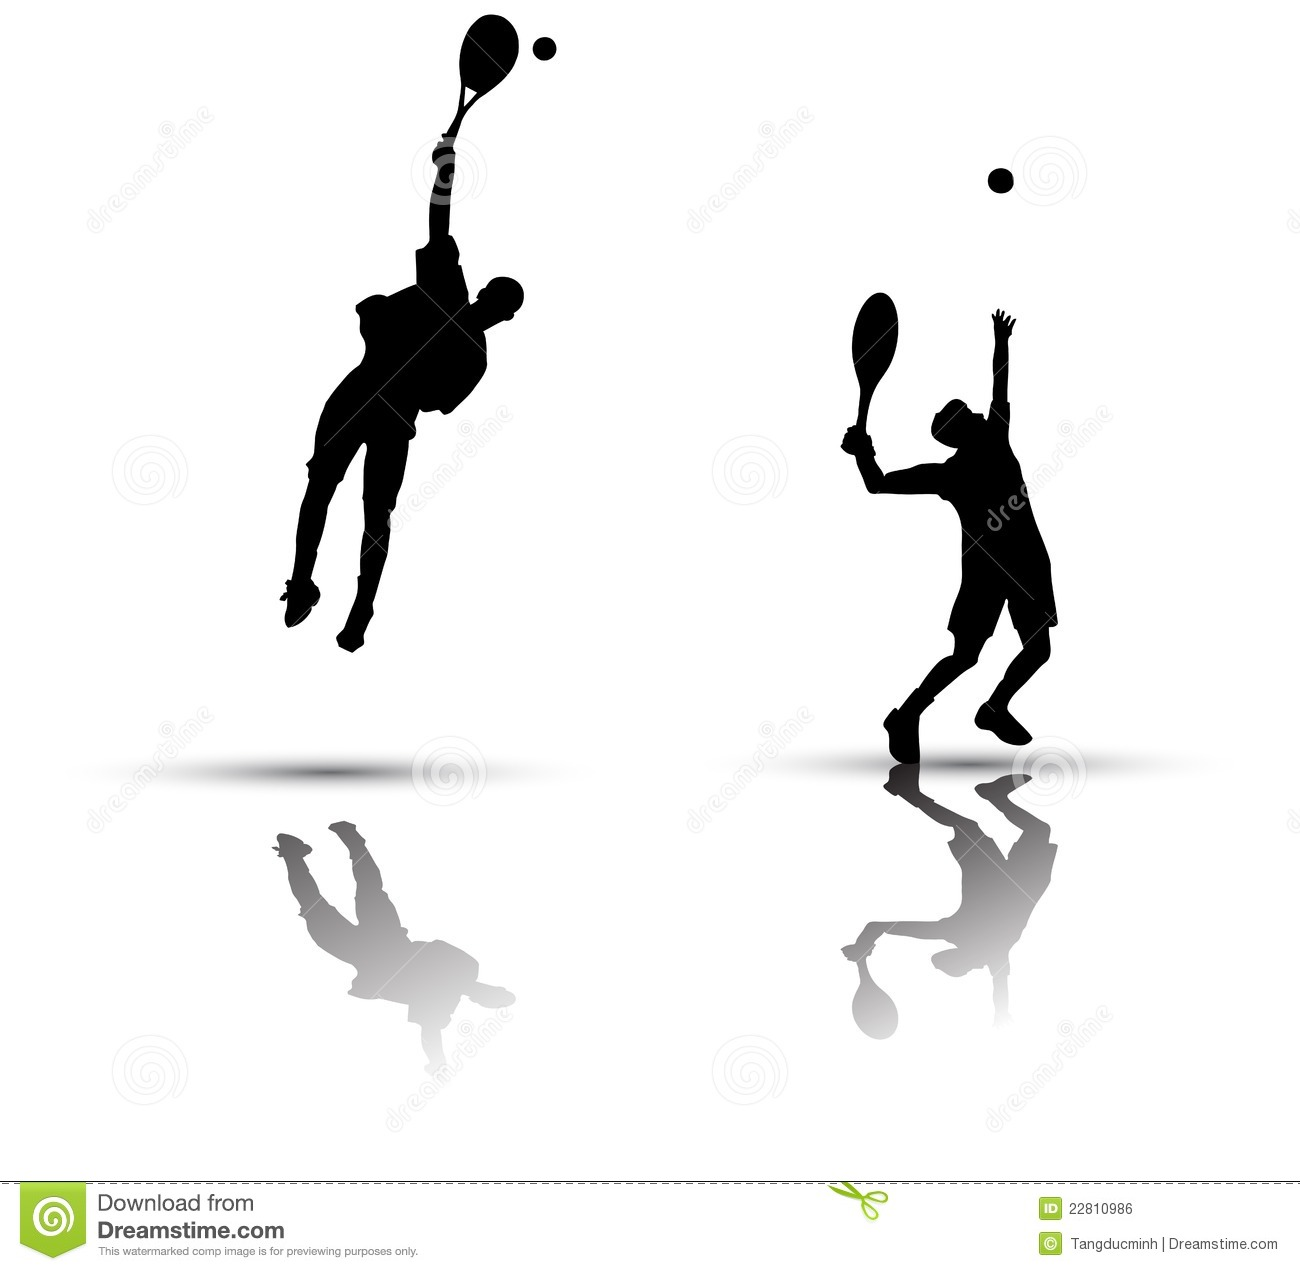 Tennis Player Silhouette Royalty Free Stock Image - Image ... Badminton Player Png